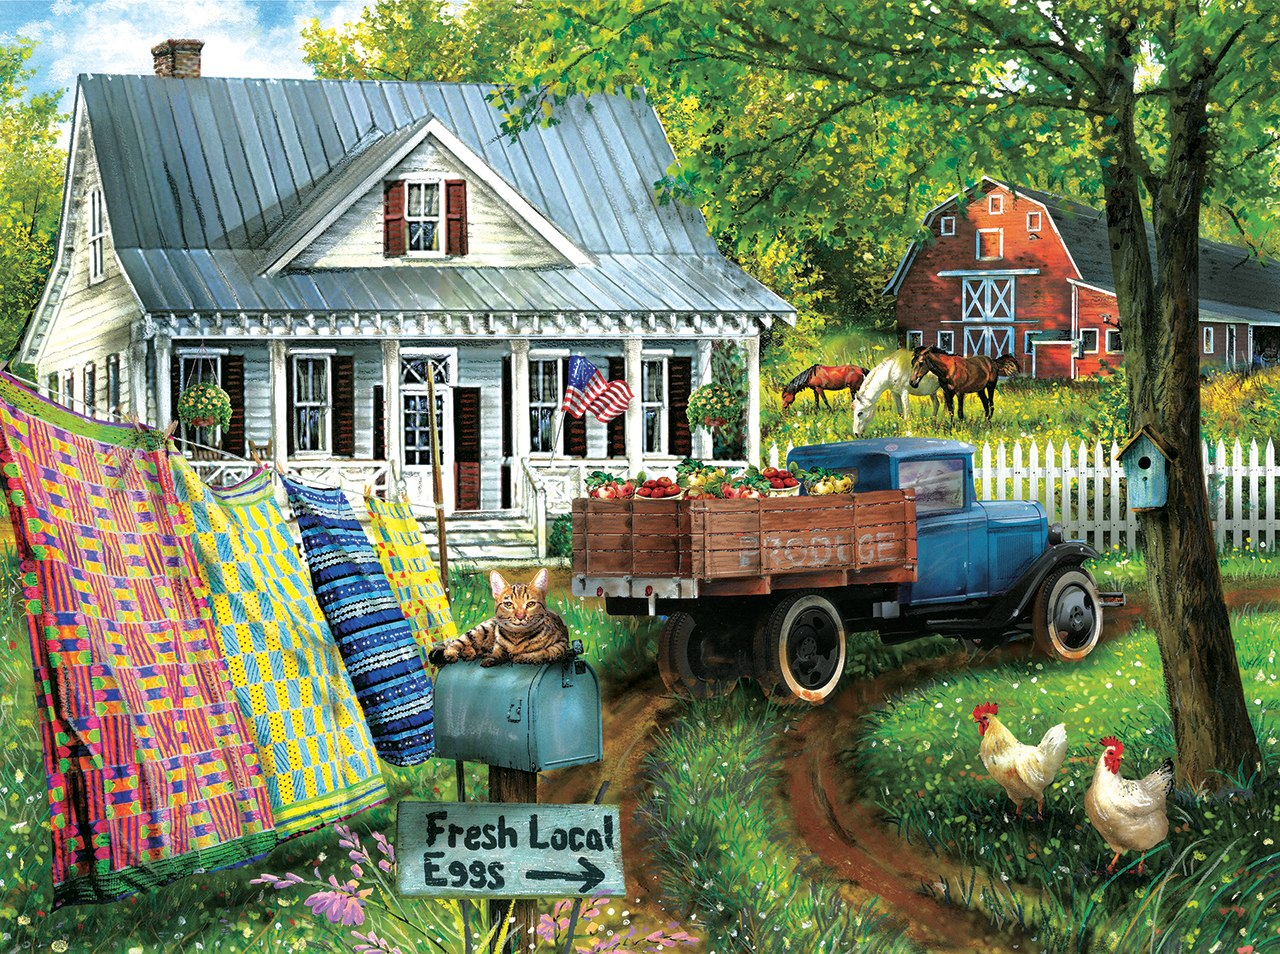 Countryside Living - 1000pc Jigsaw Puzzle By Sunsout  			  					NEW